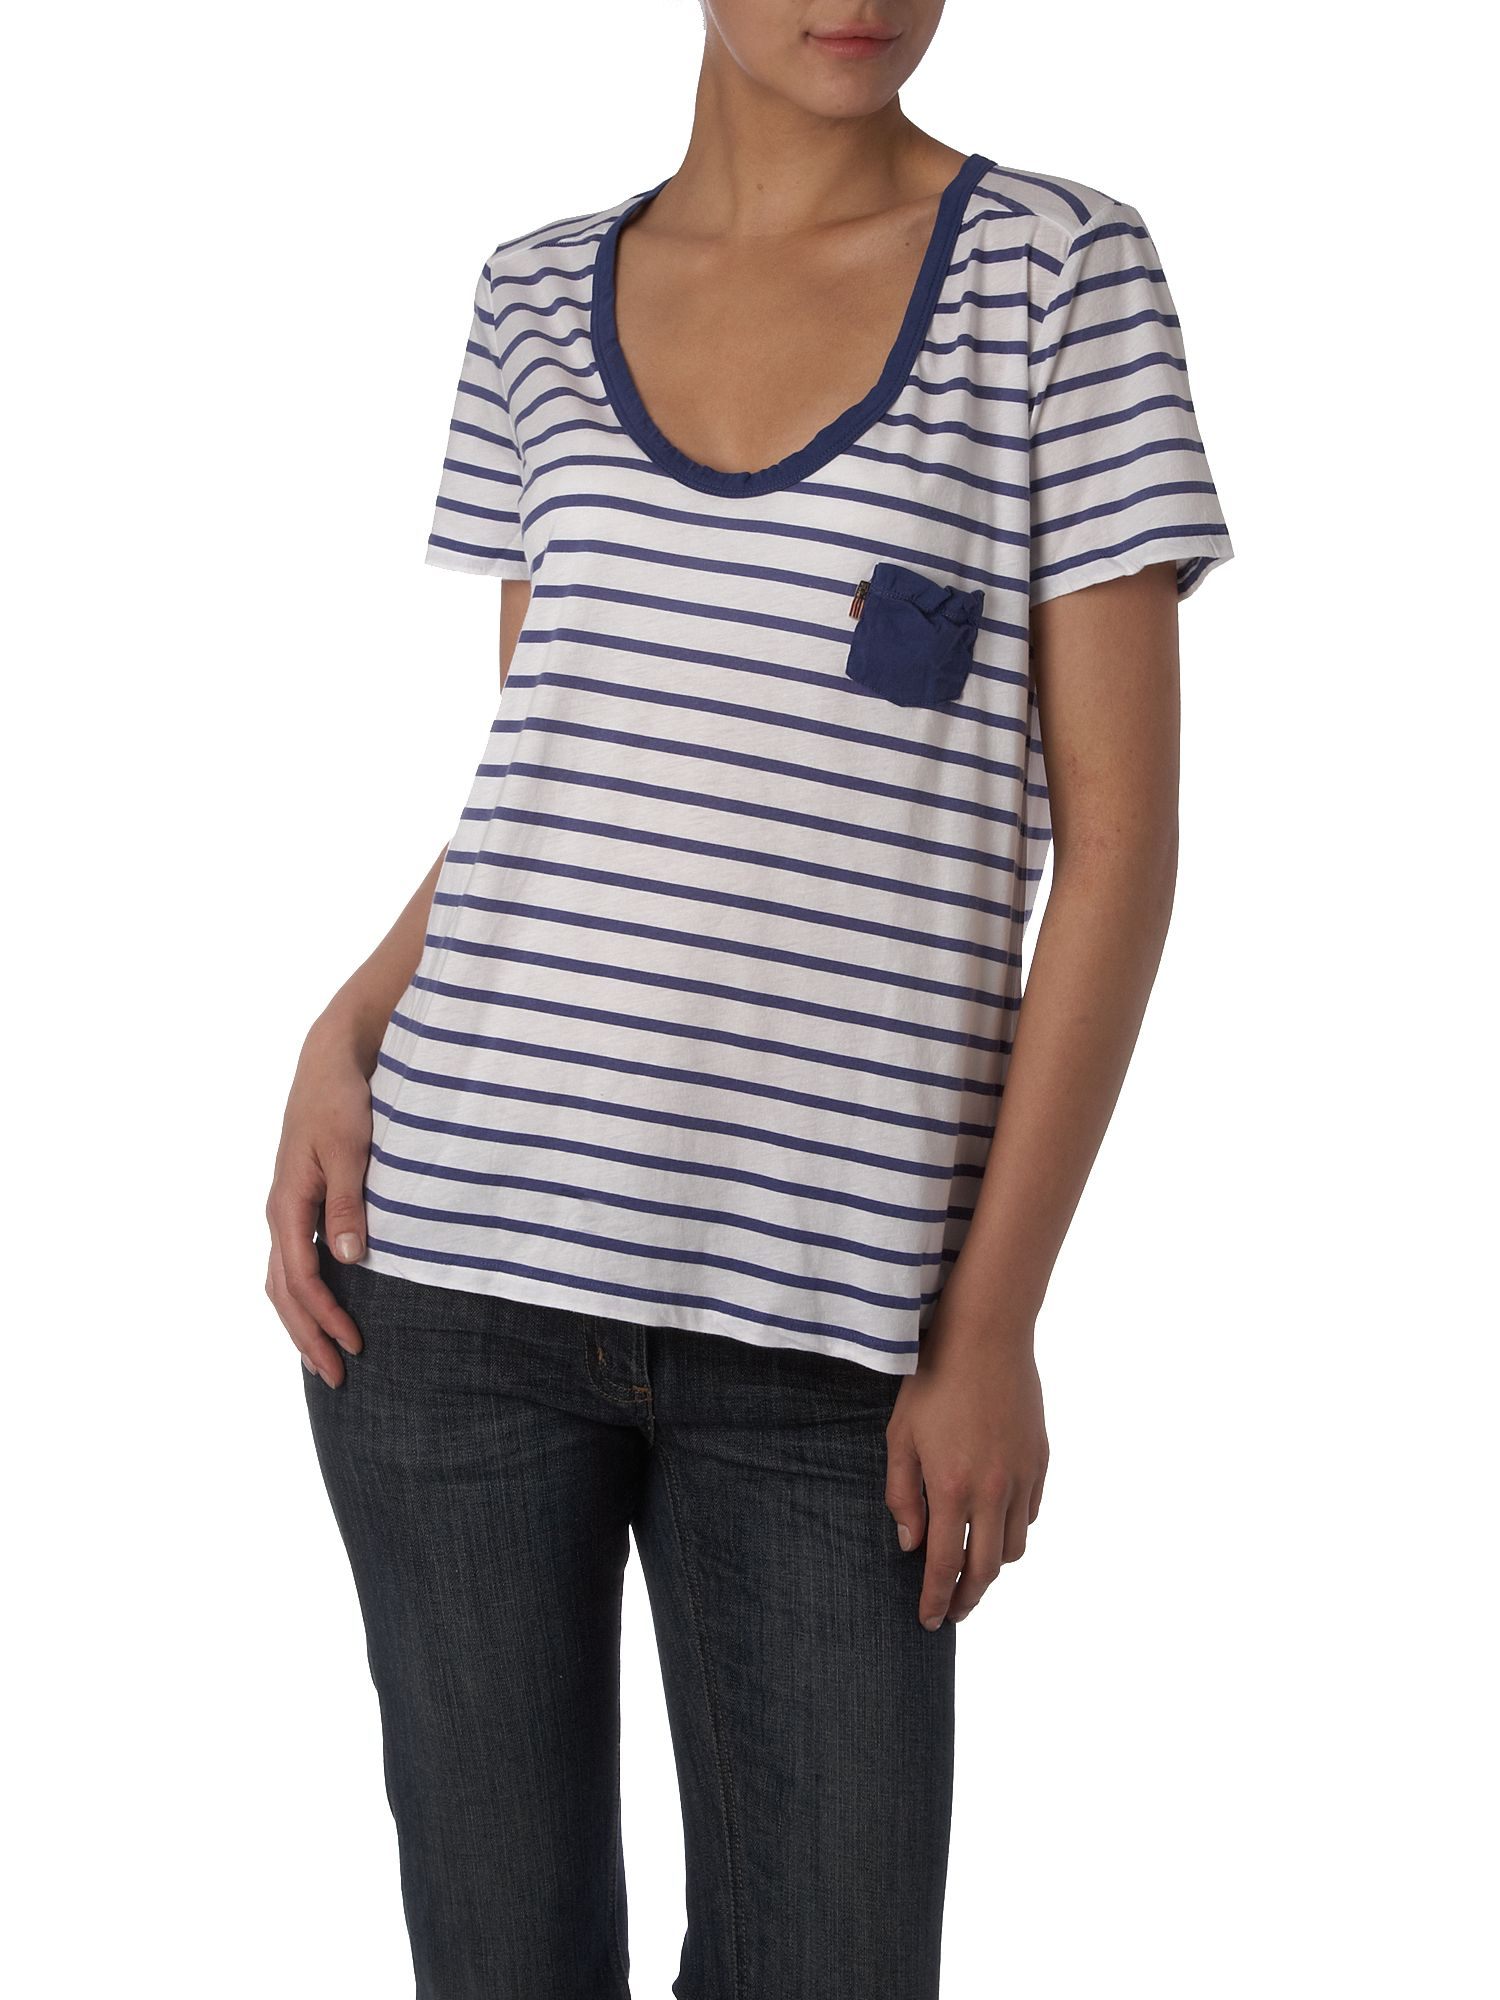 Polo Jeans Striped scoop neck tee White product image